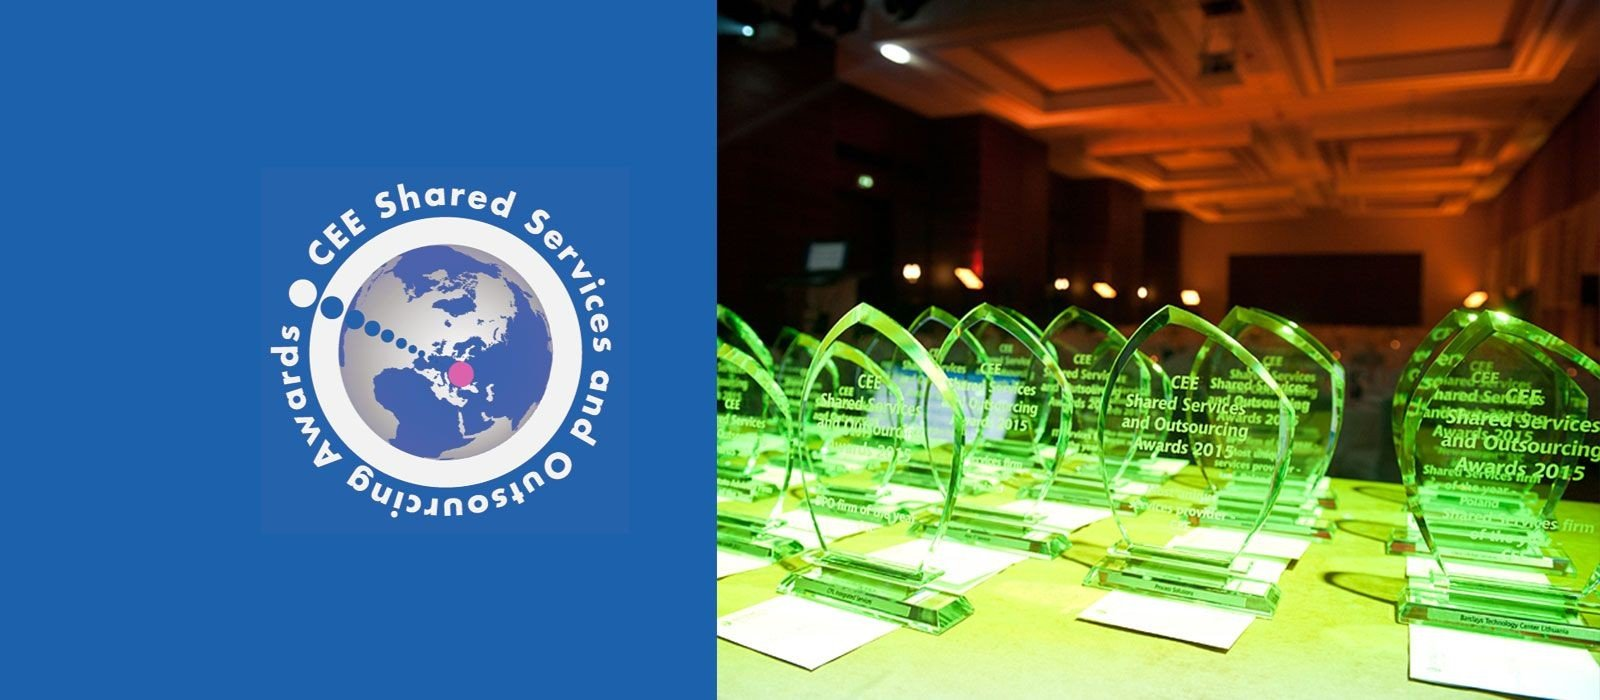 CEE Shared Services & Outsourcing Awards